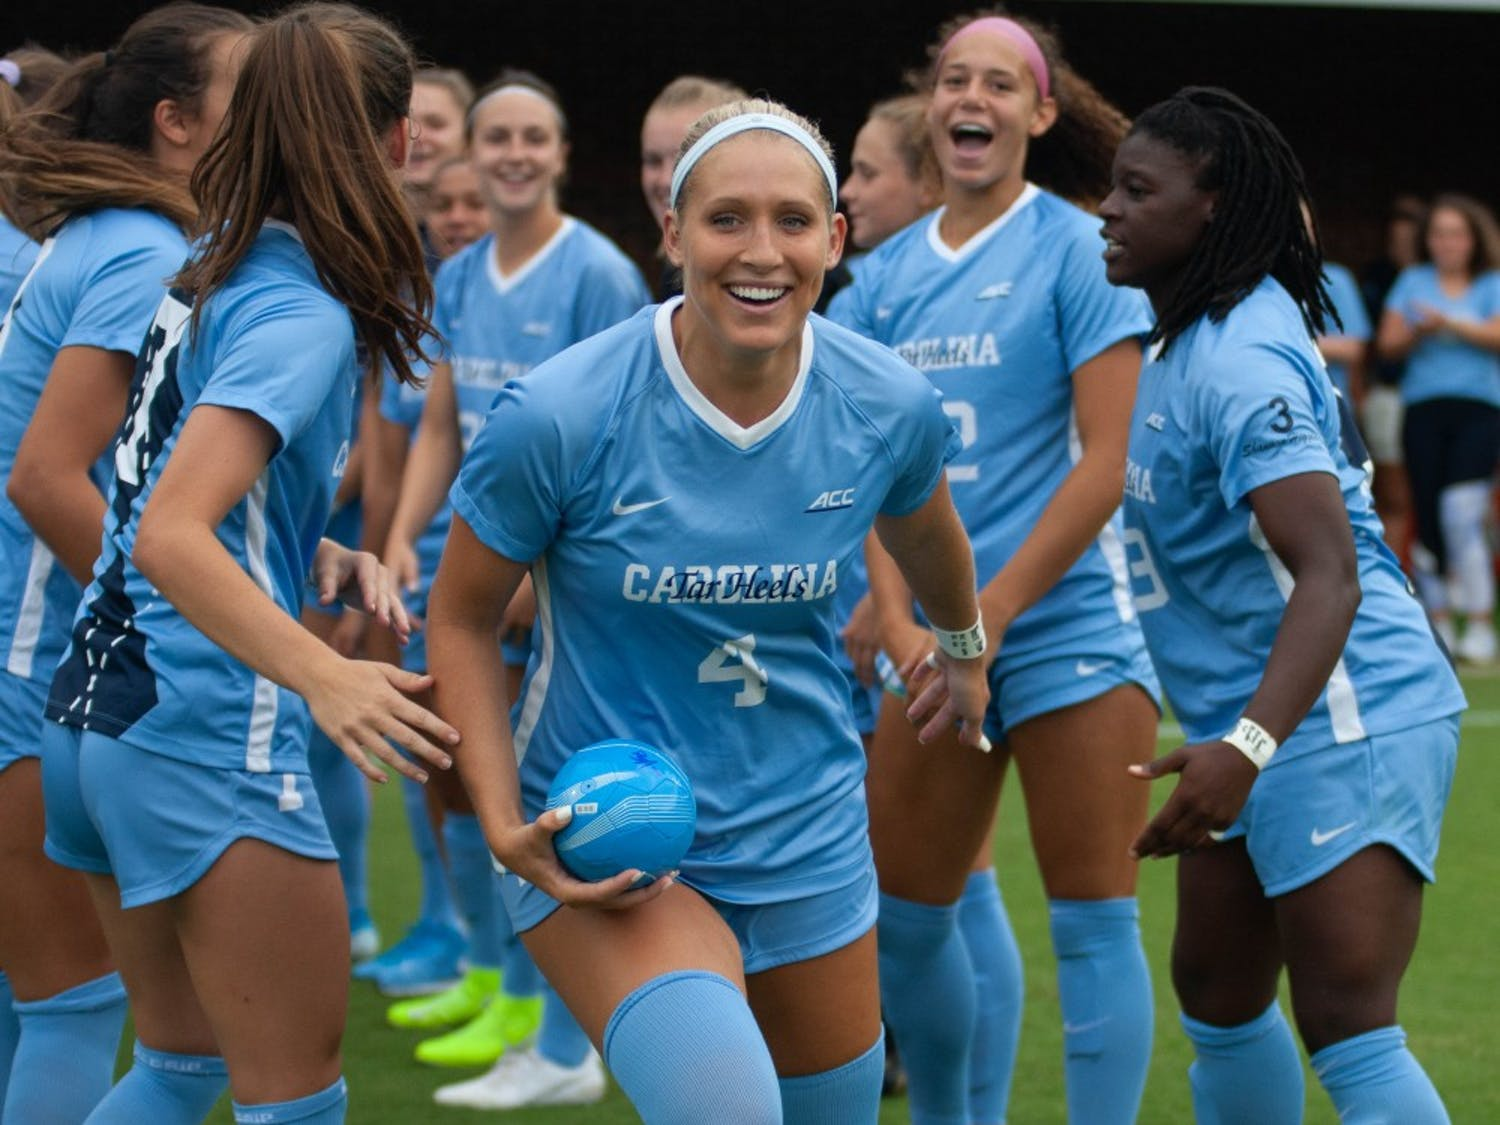 Women's soccer forward, Bridgette Andrzejewski (4), runs out of the tunnel before a game against Duke on Sunday August 25, 2019. UNC beat Duke 2-0.